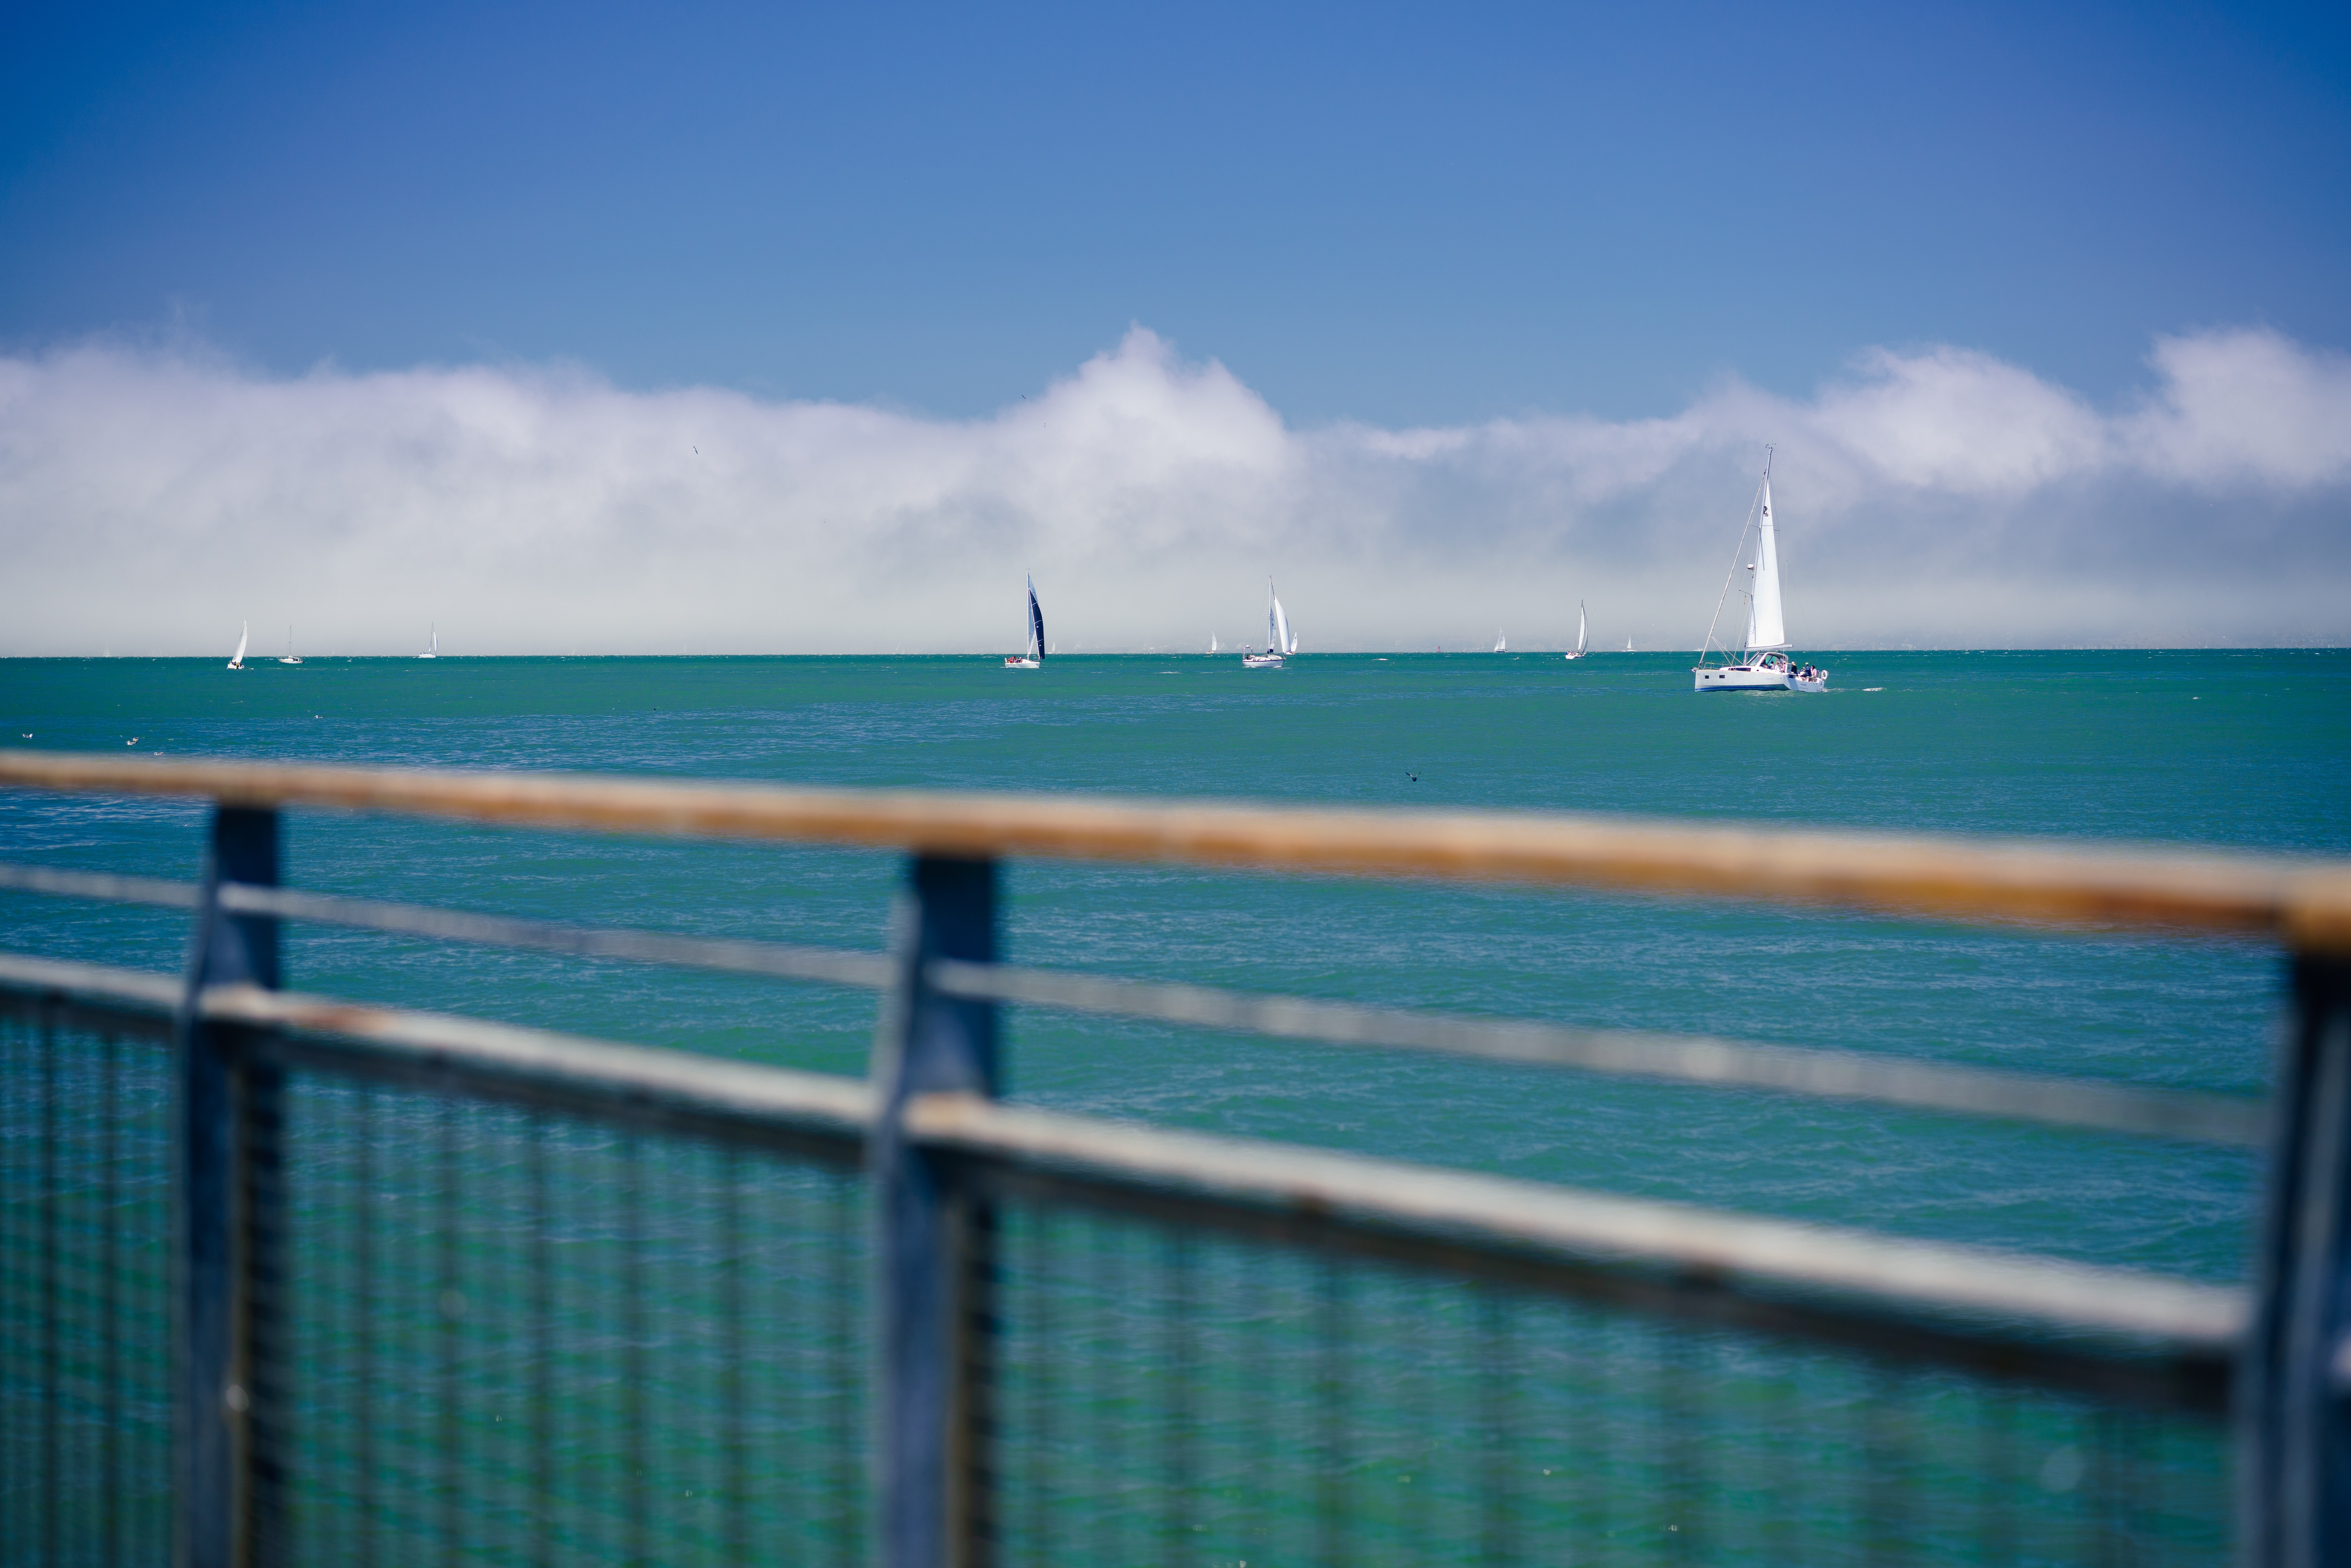 sailboats on seat under blue sky